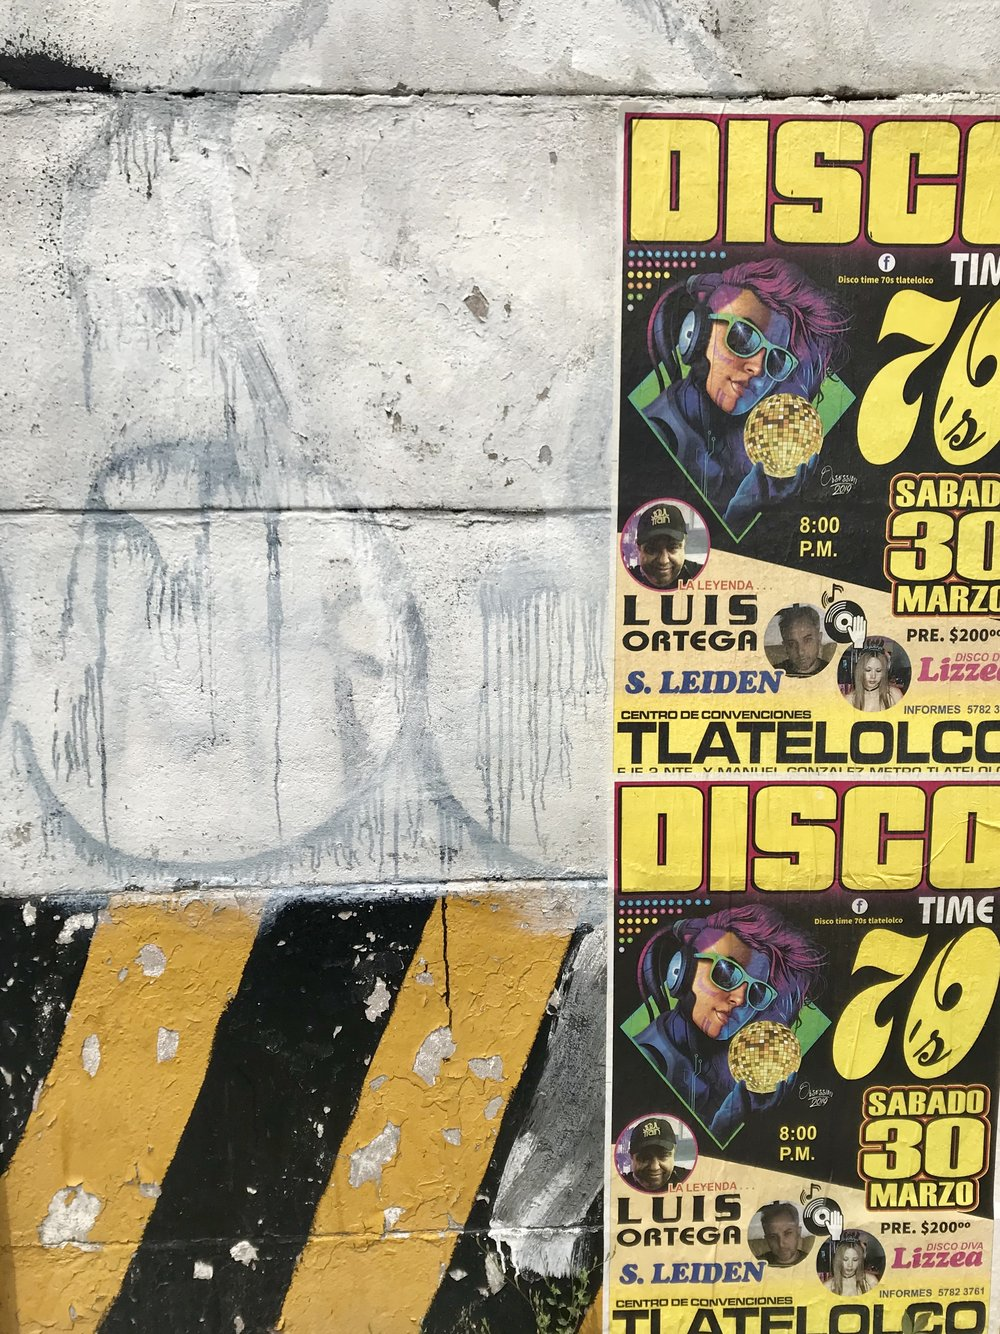 Hazard paint, grafitti and DISCO posters!